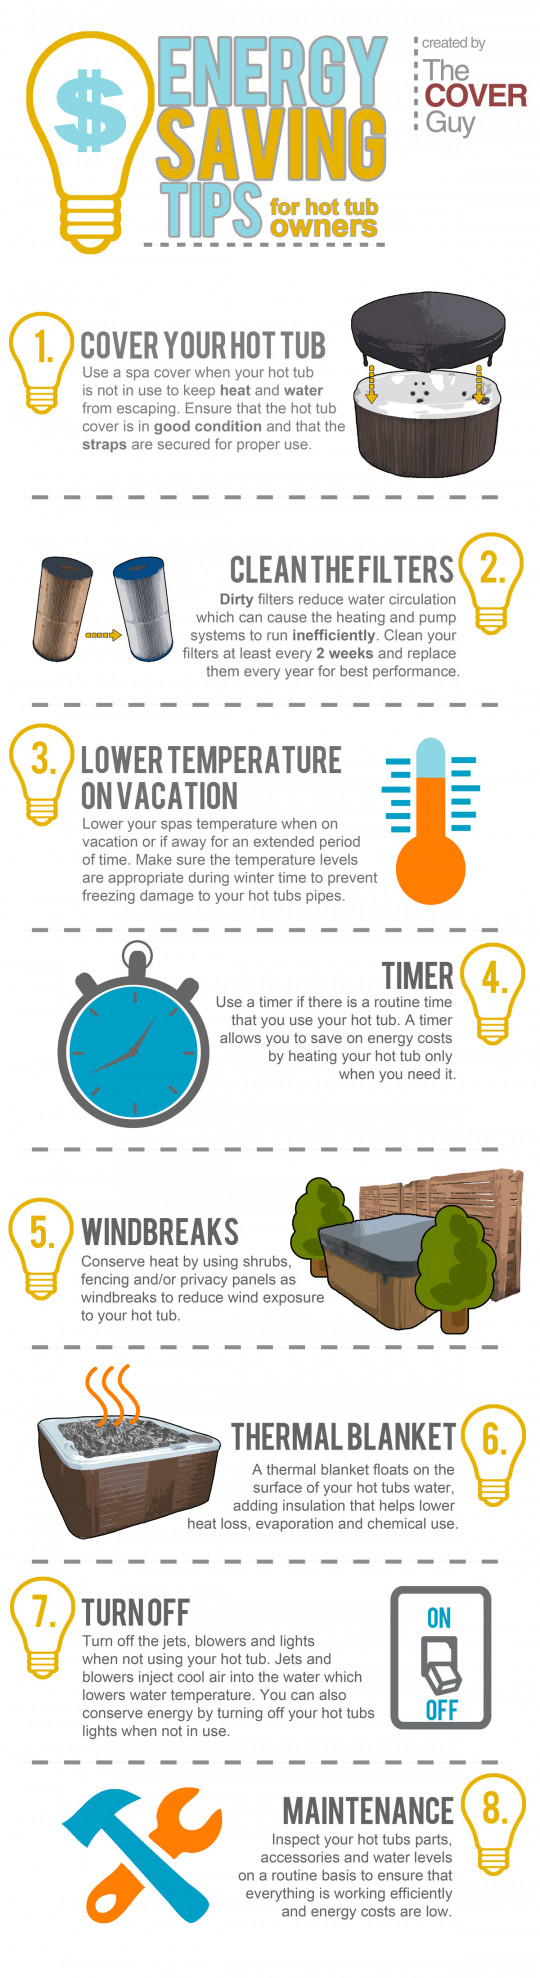 Energy Saving Tips for Hot Tub Owners